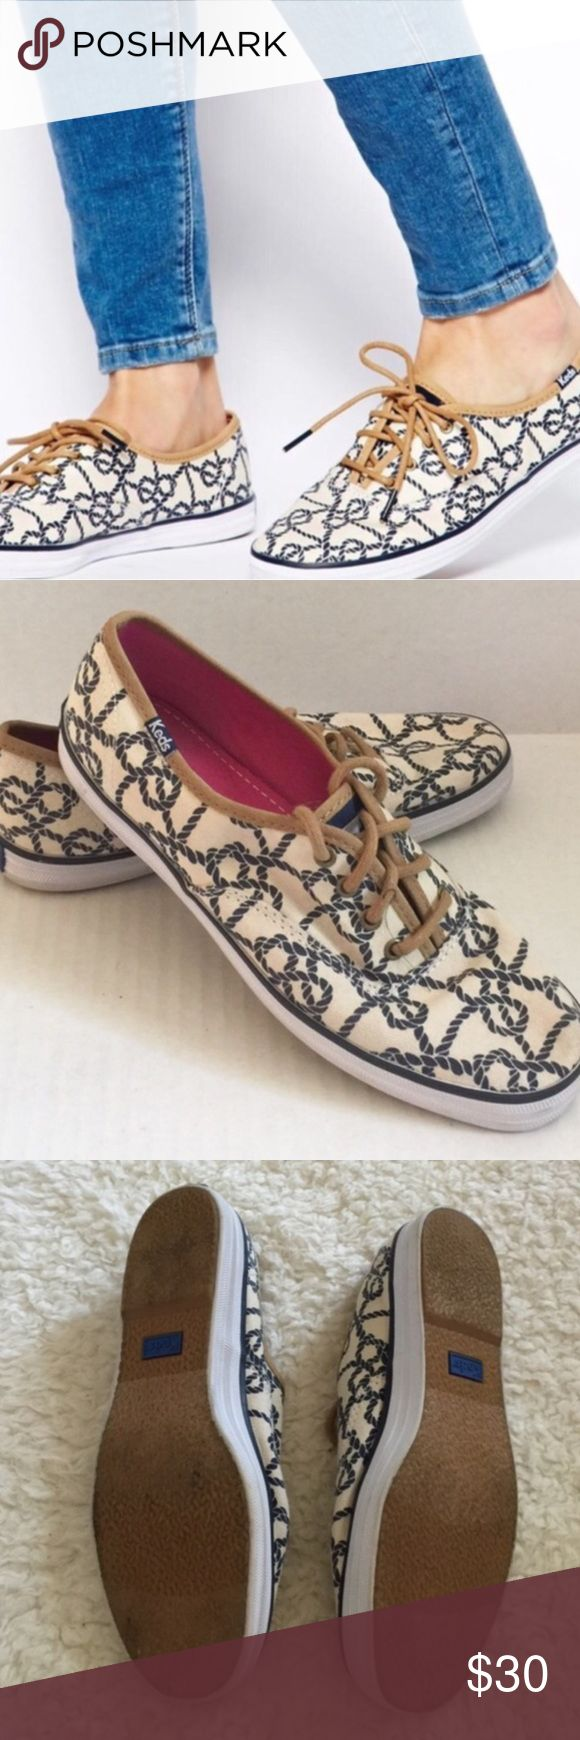 K🔴CLEARANCE🔴eds champion knot 5 Excellent condition keds champion knot sneaker size 5 Keds Shoes Sneakers